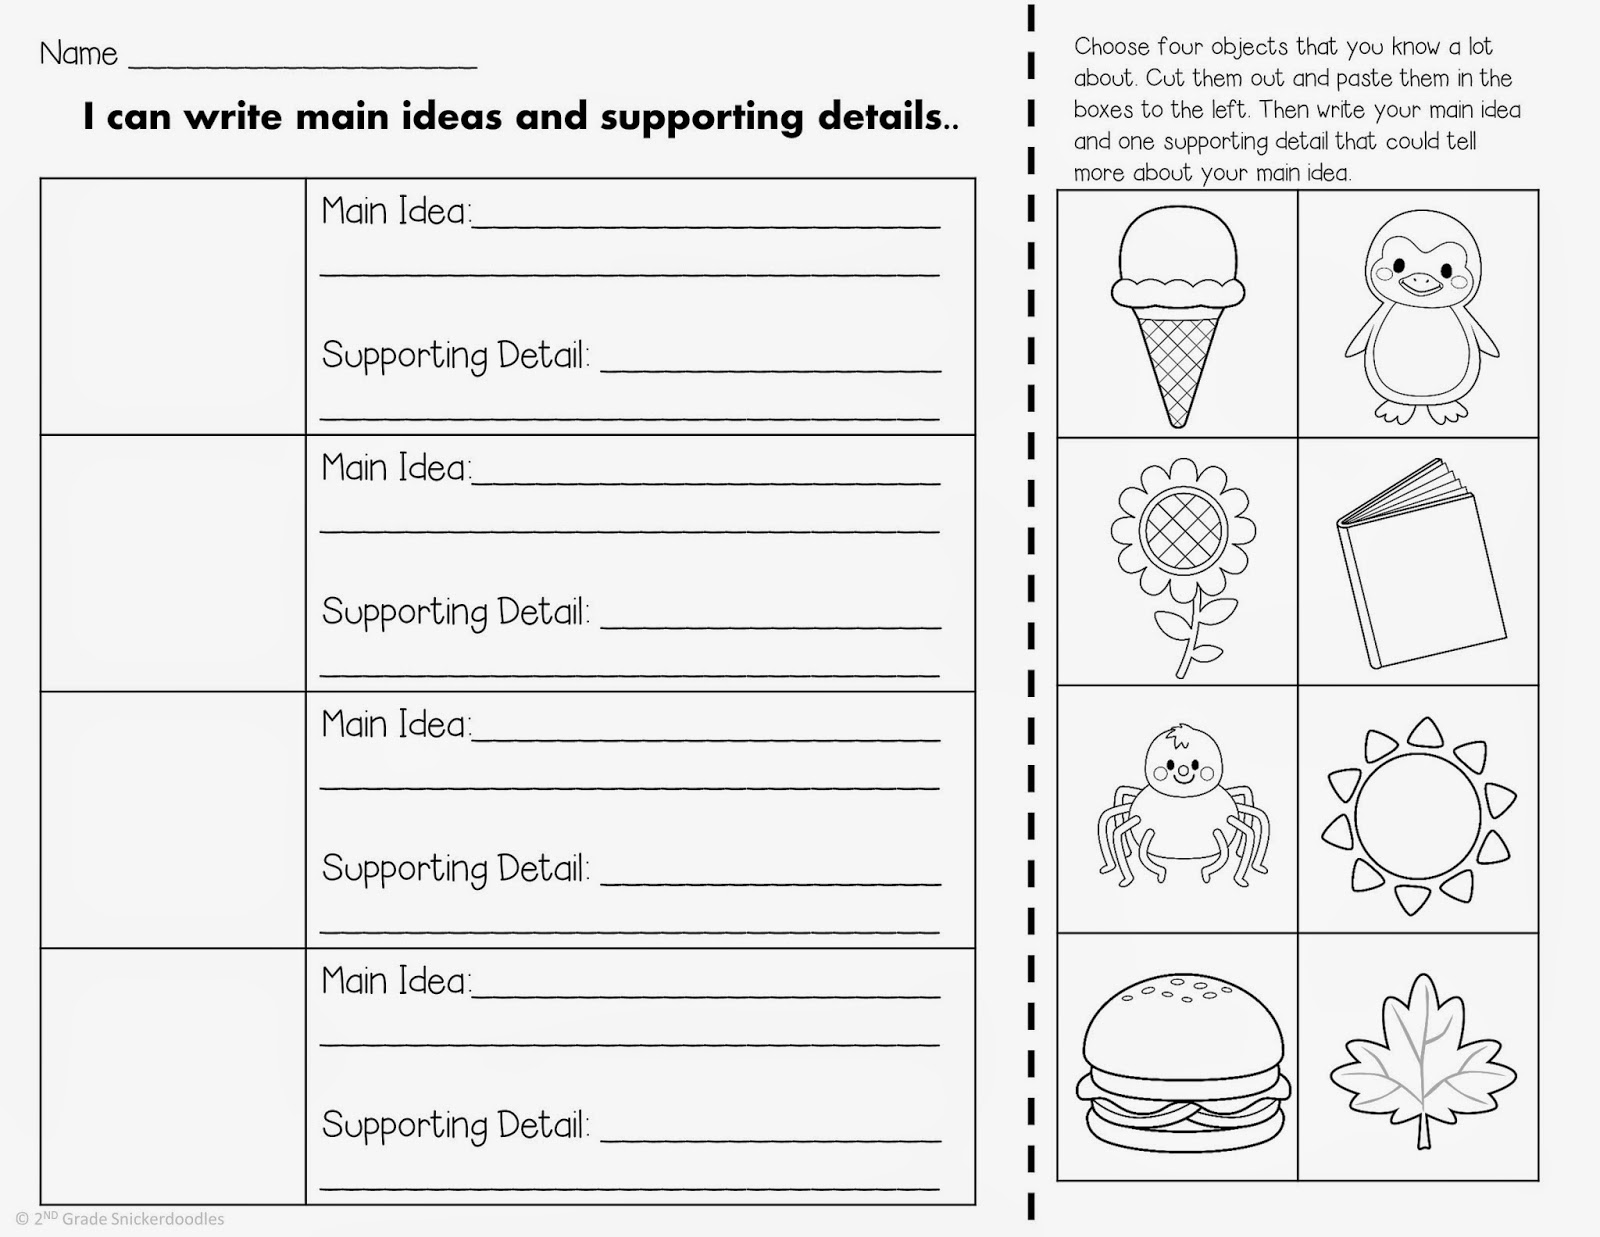 hight resolution of Main Idea Worksheets 2nd Grade   Printable Worksheets and Activities for  Teachers